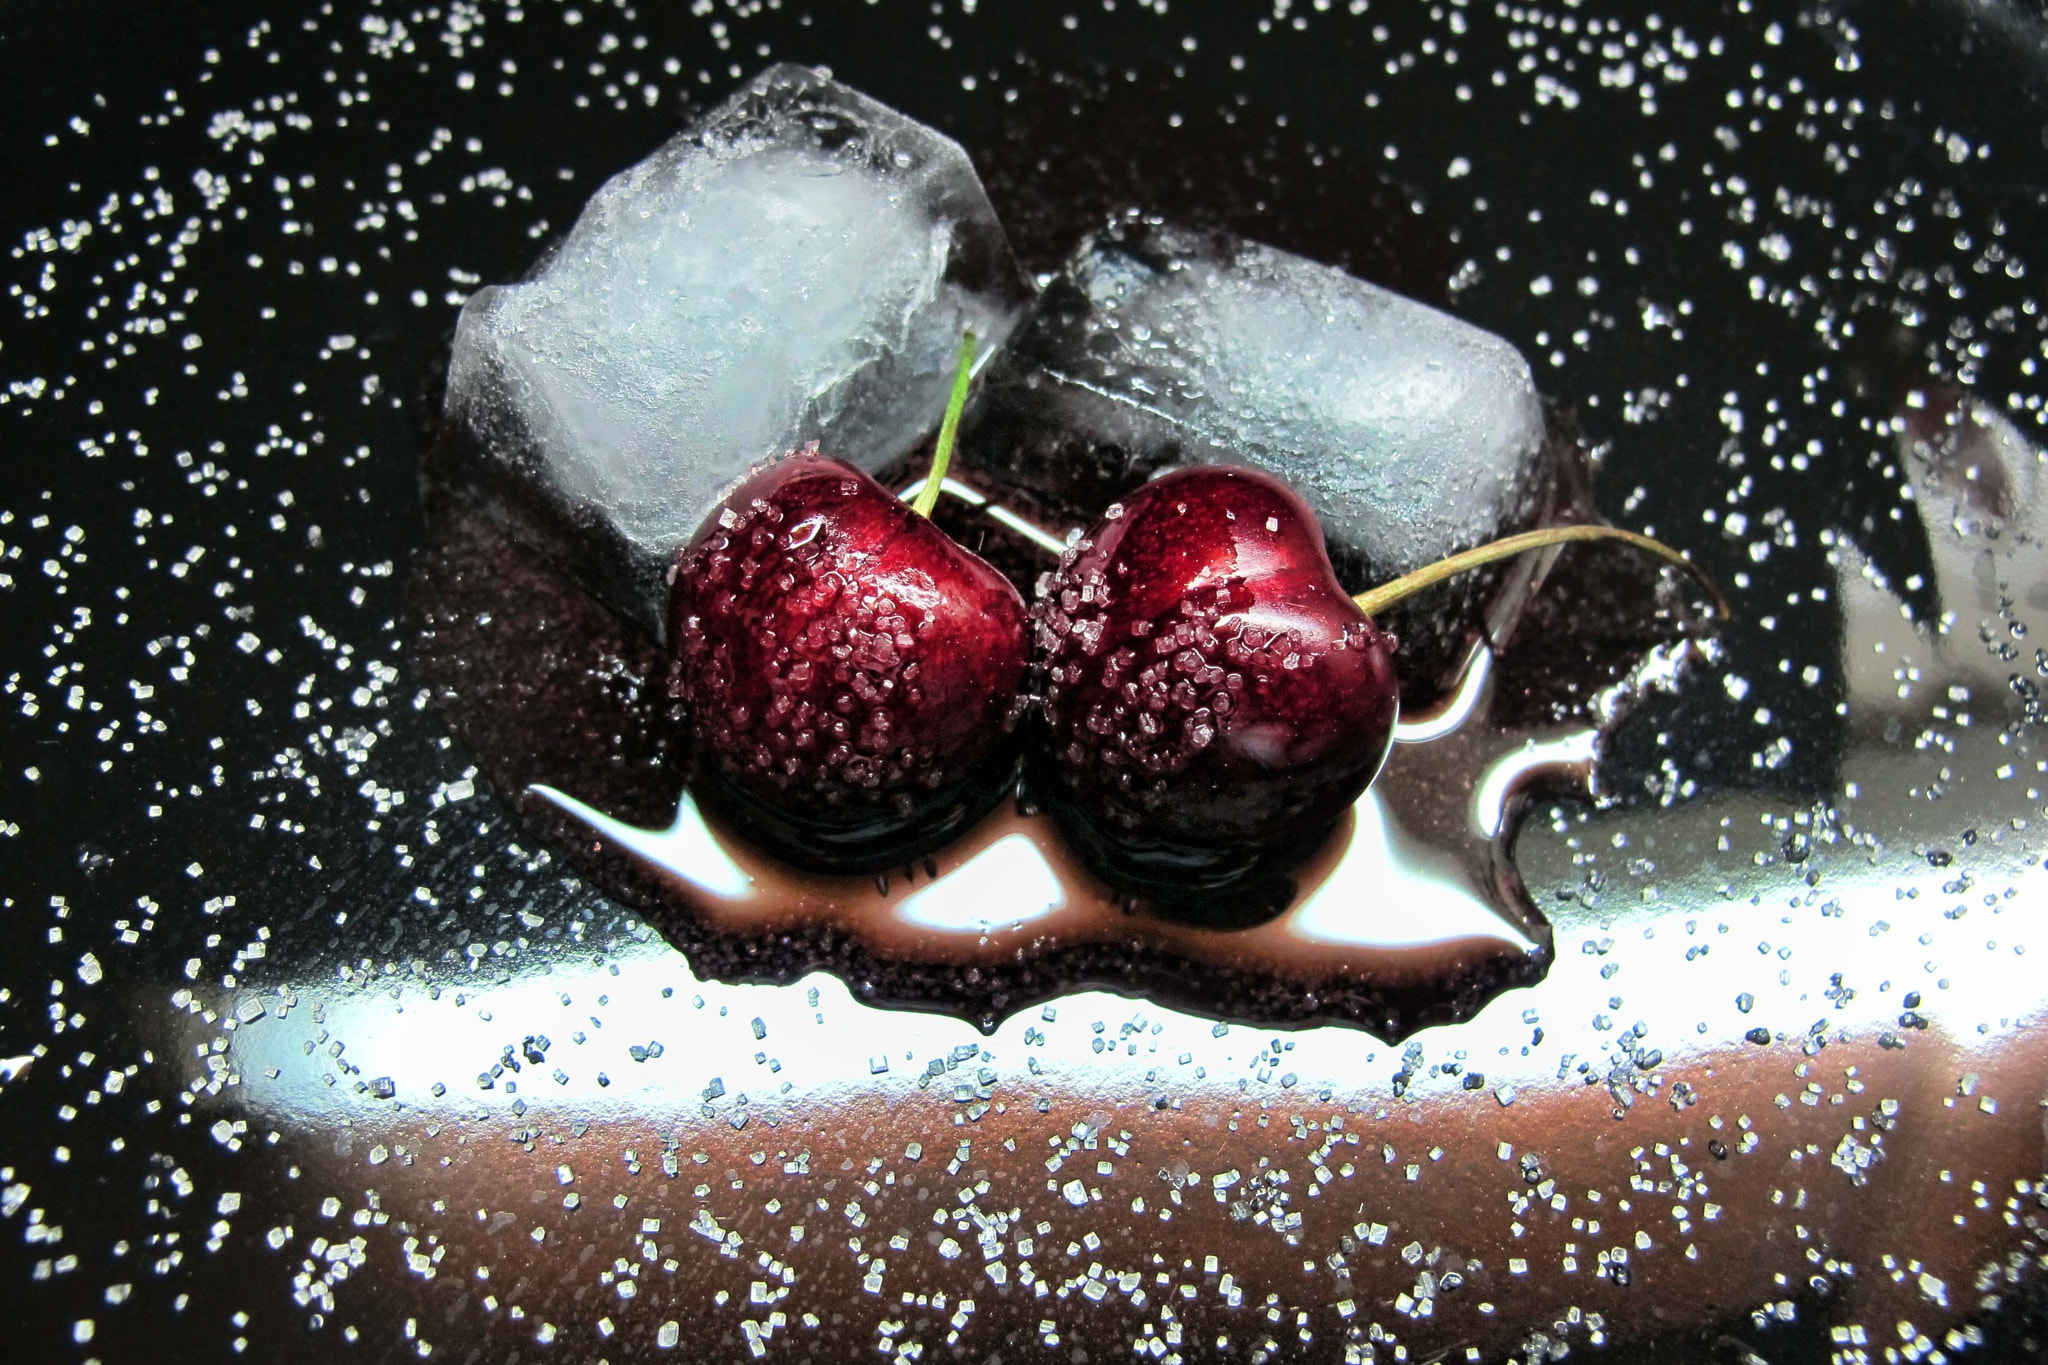 Photograph Cherries and art by Amalia Lampri on 500px